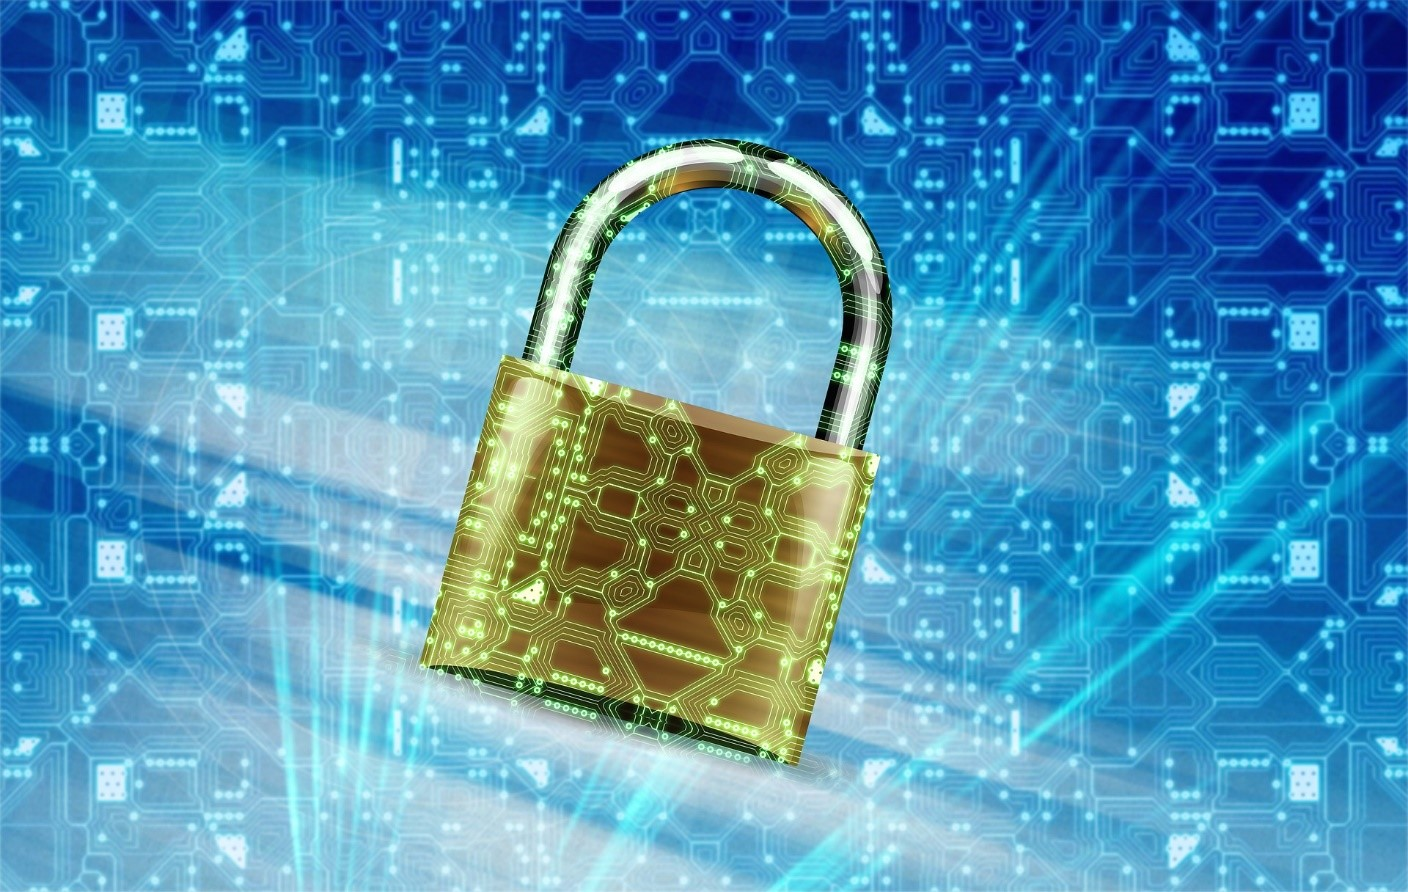 Padlock in blue field of technology